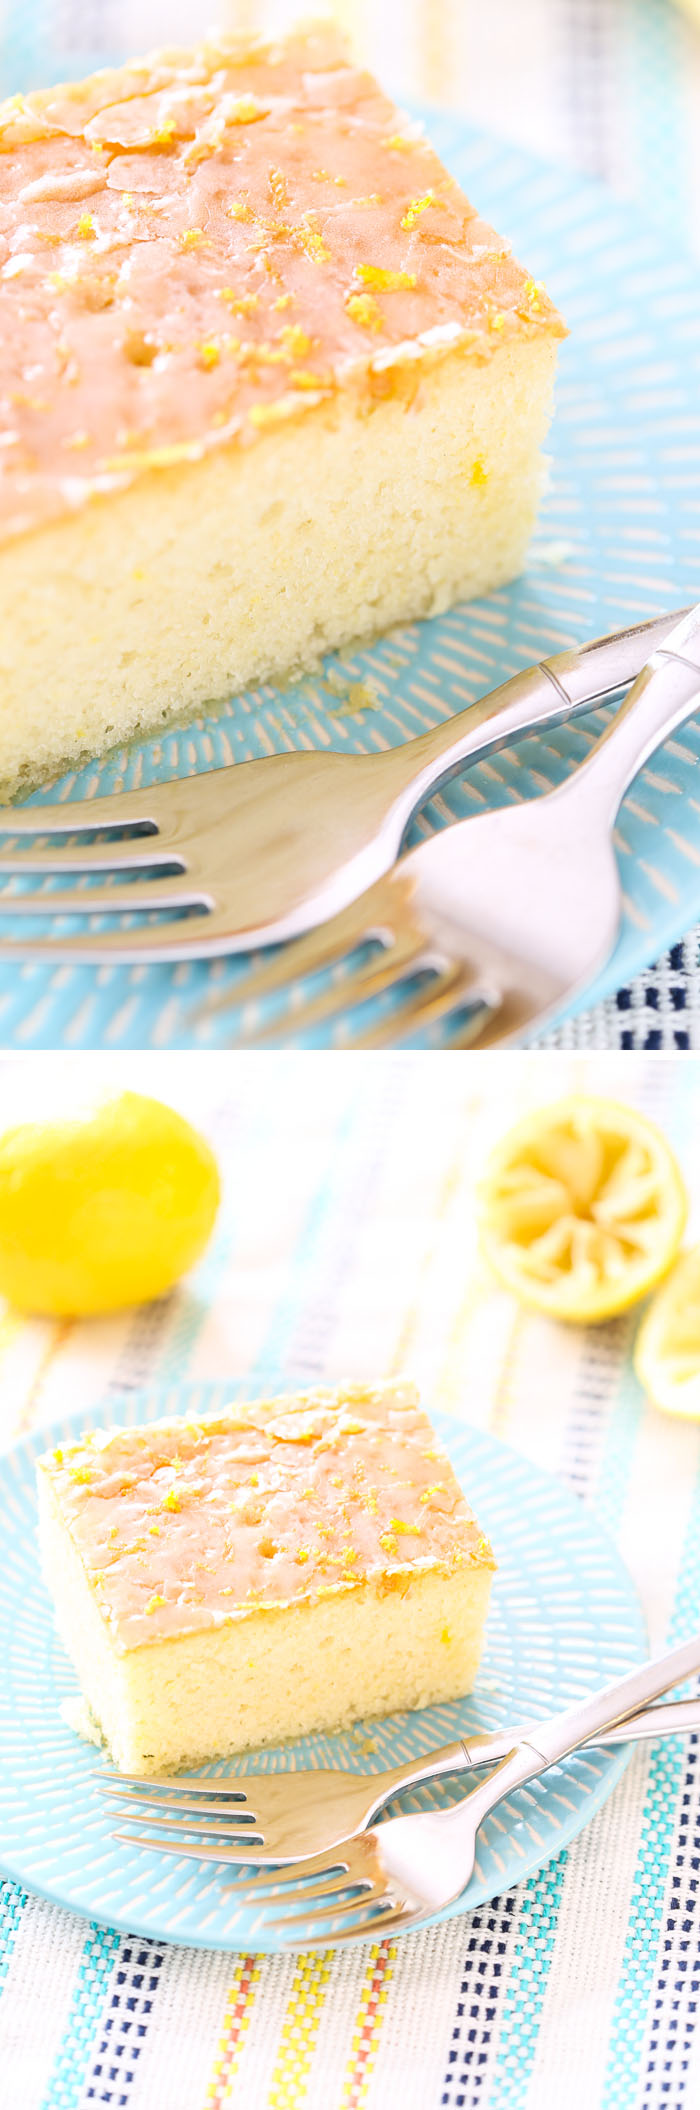 Quick and Easy Iced Lemon Cake - Willow Bird Baking